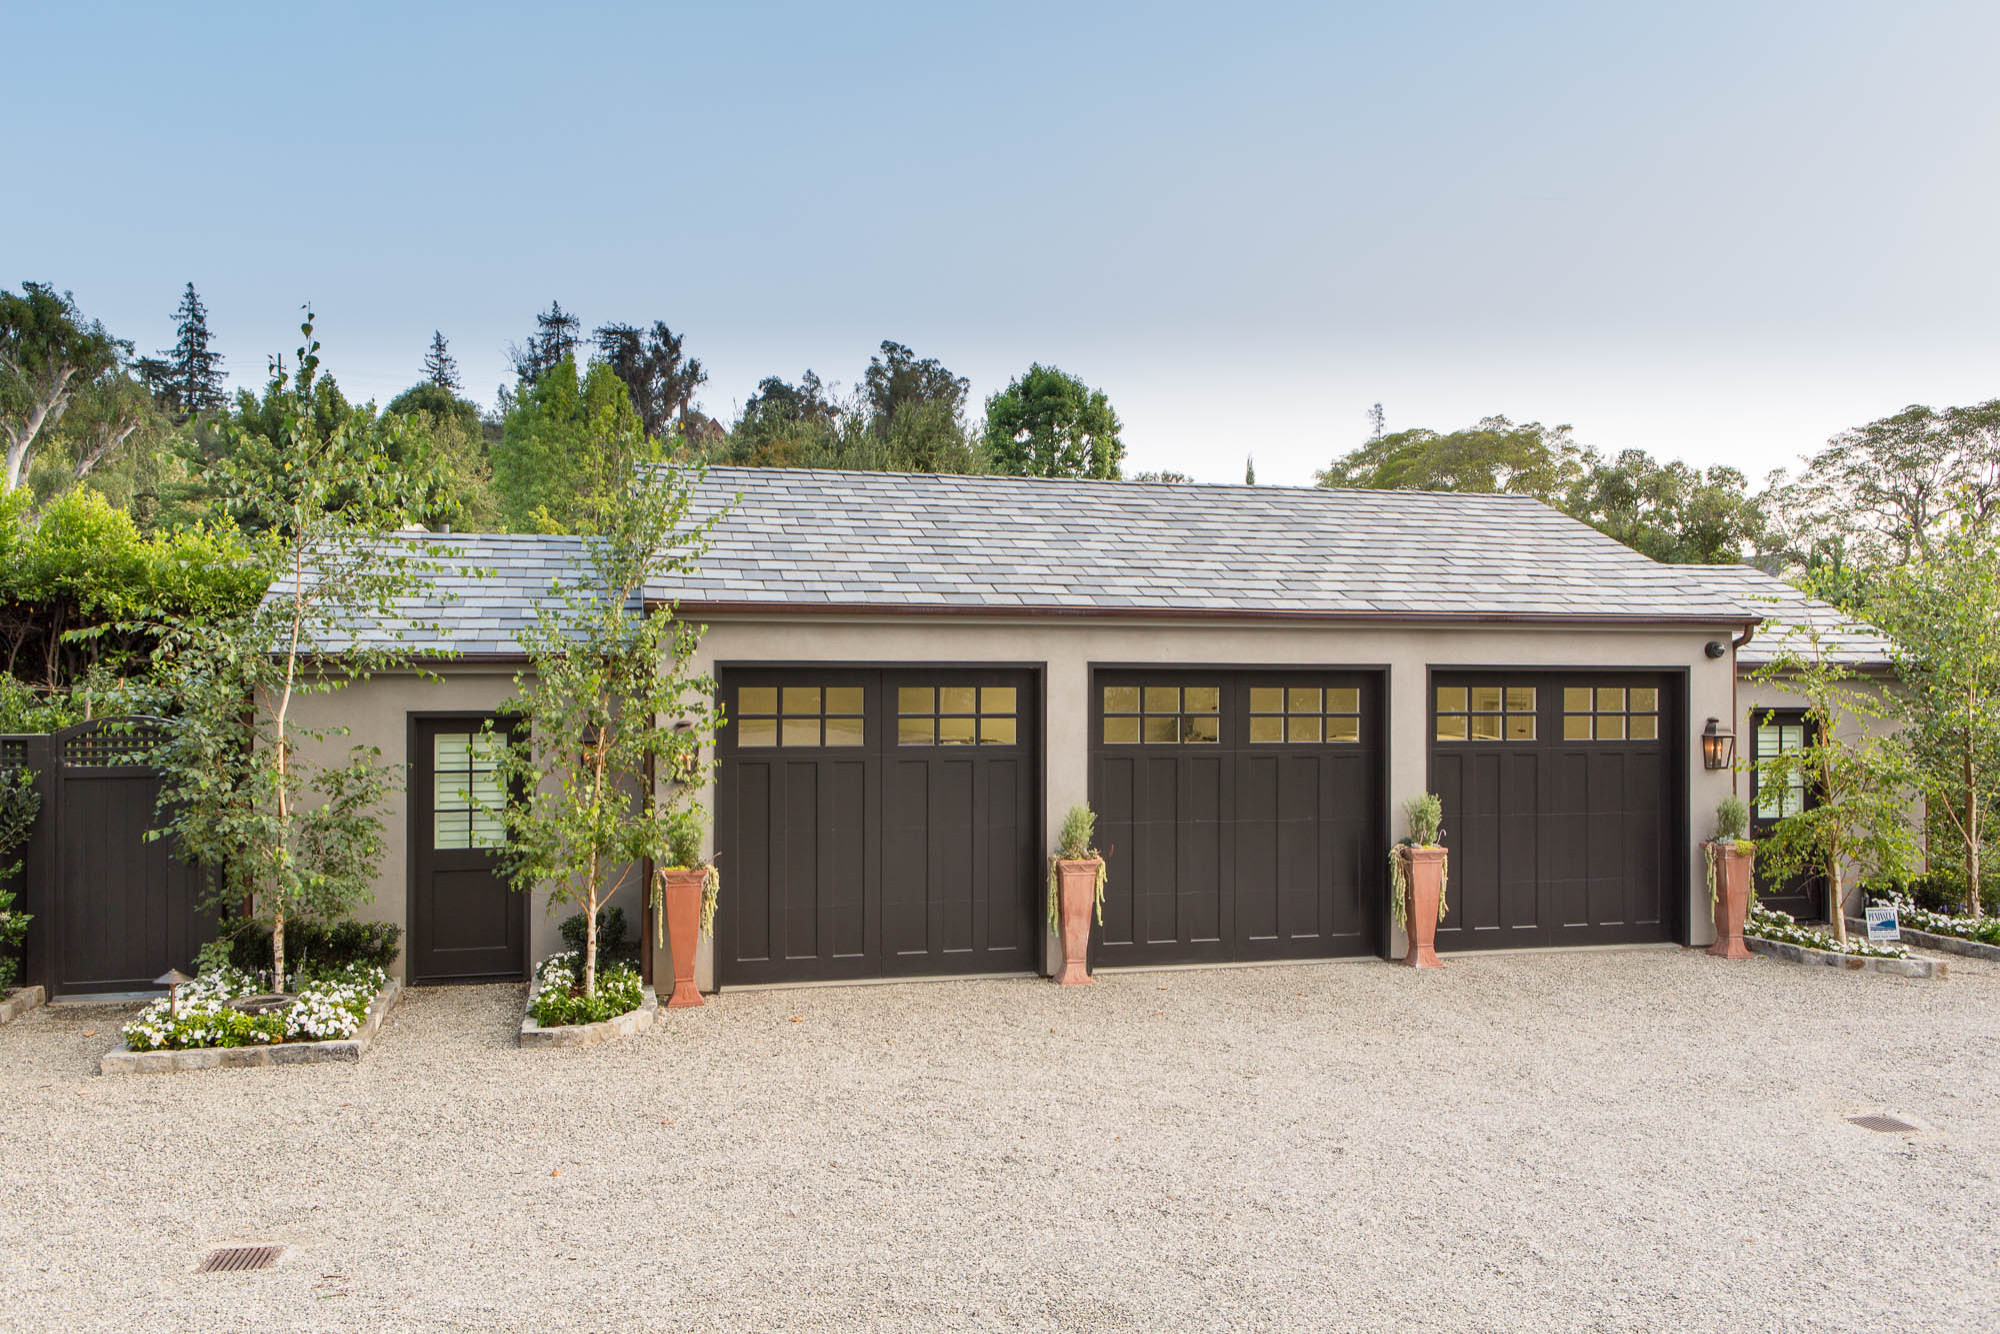 Historical renovation of a 100 year old stable